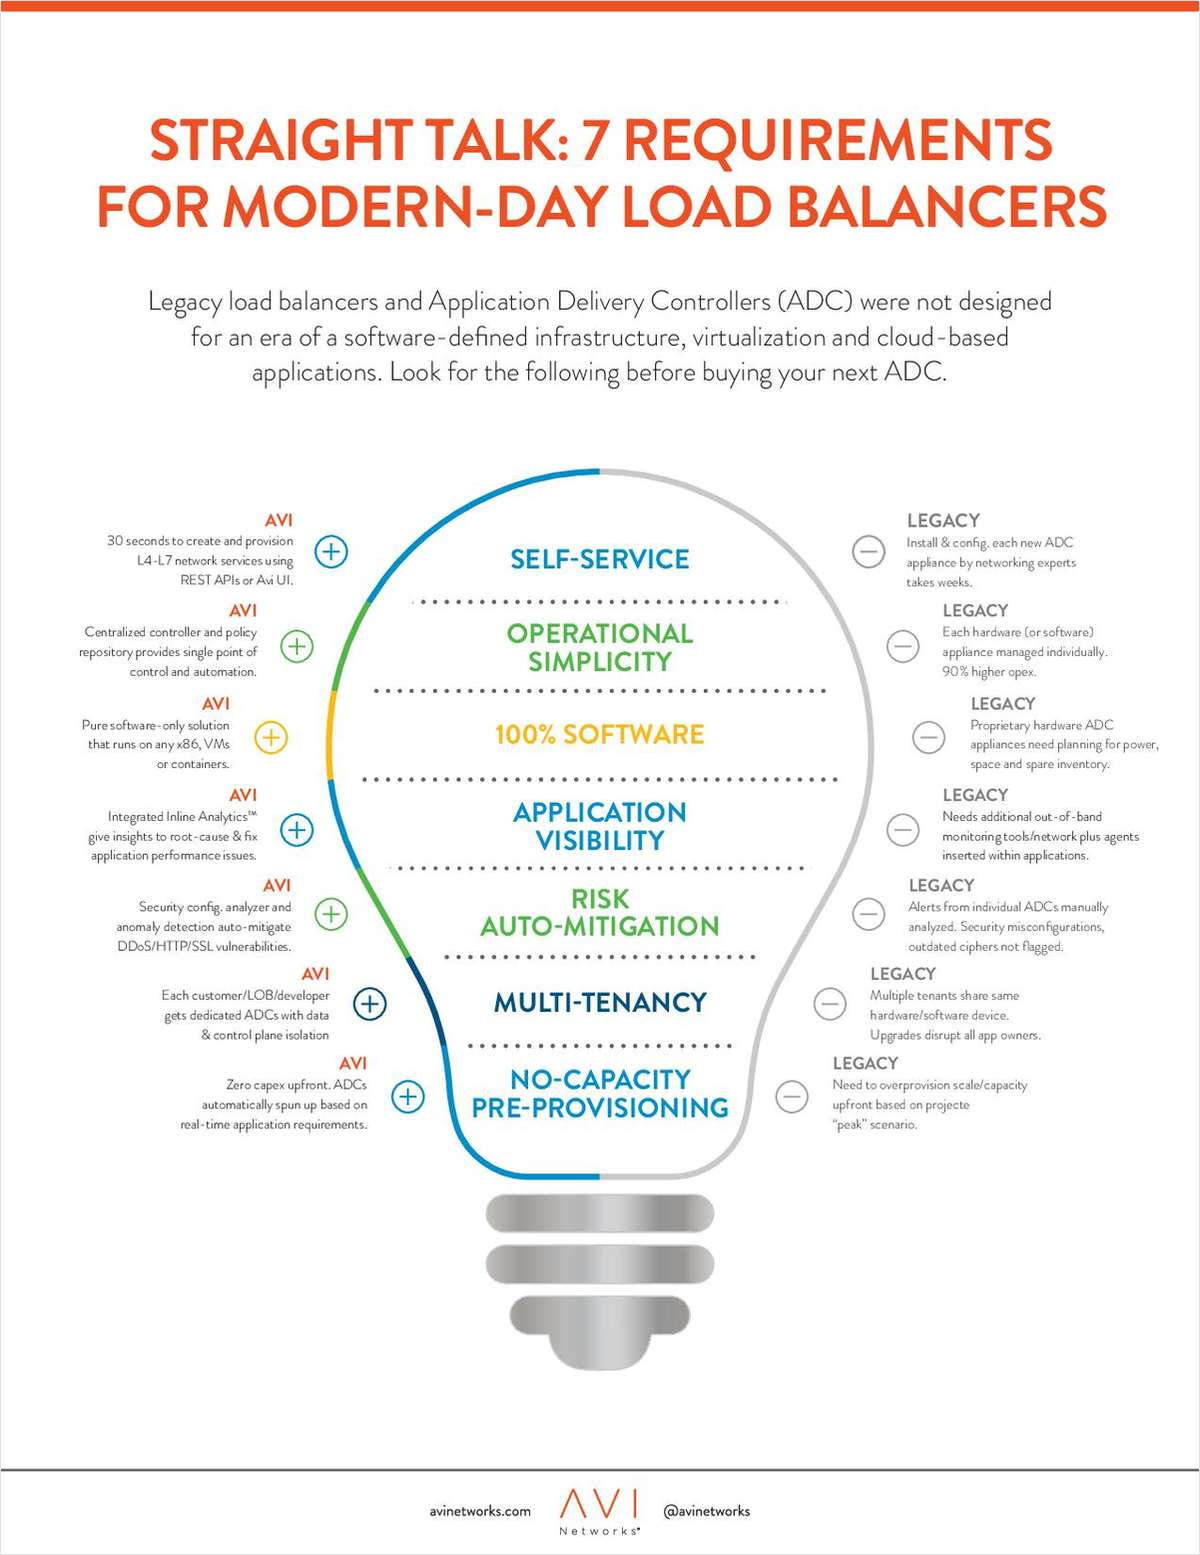 Straight Talk: 7 Requirements for Modern-Day Load Balancers